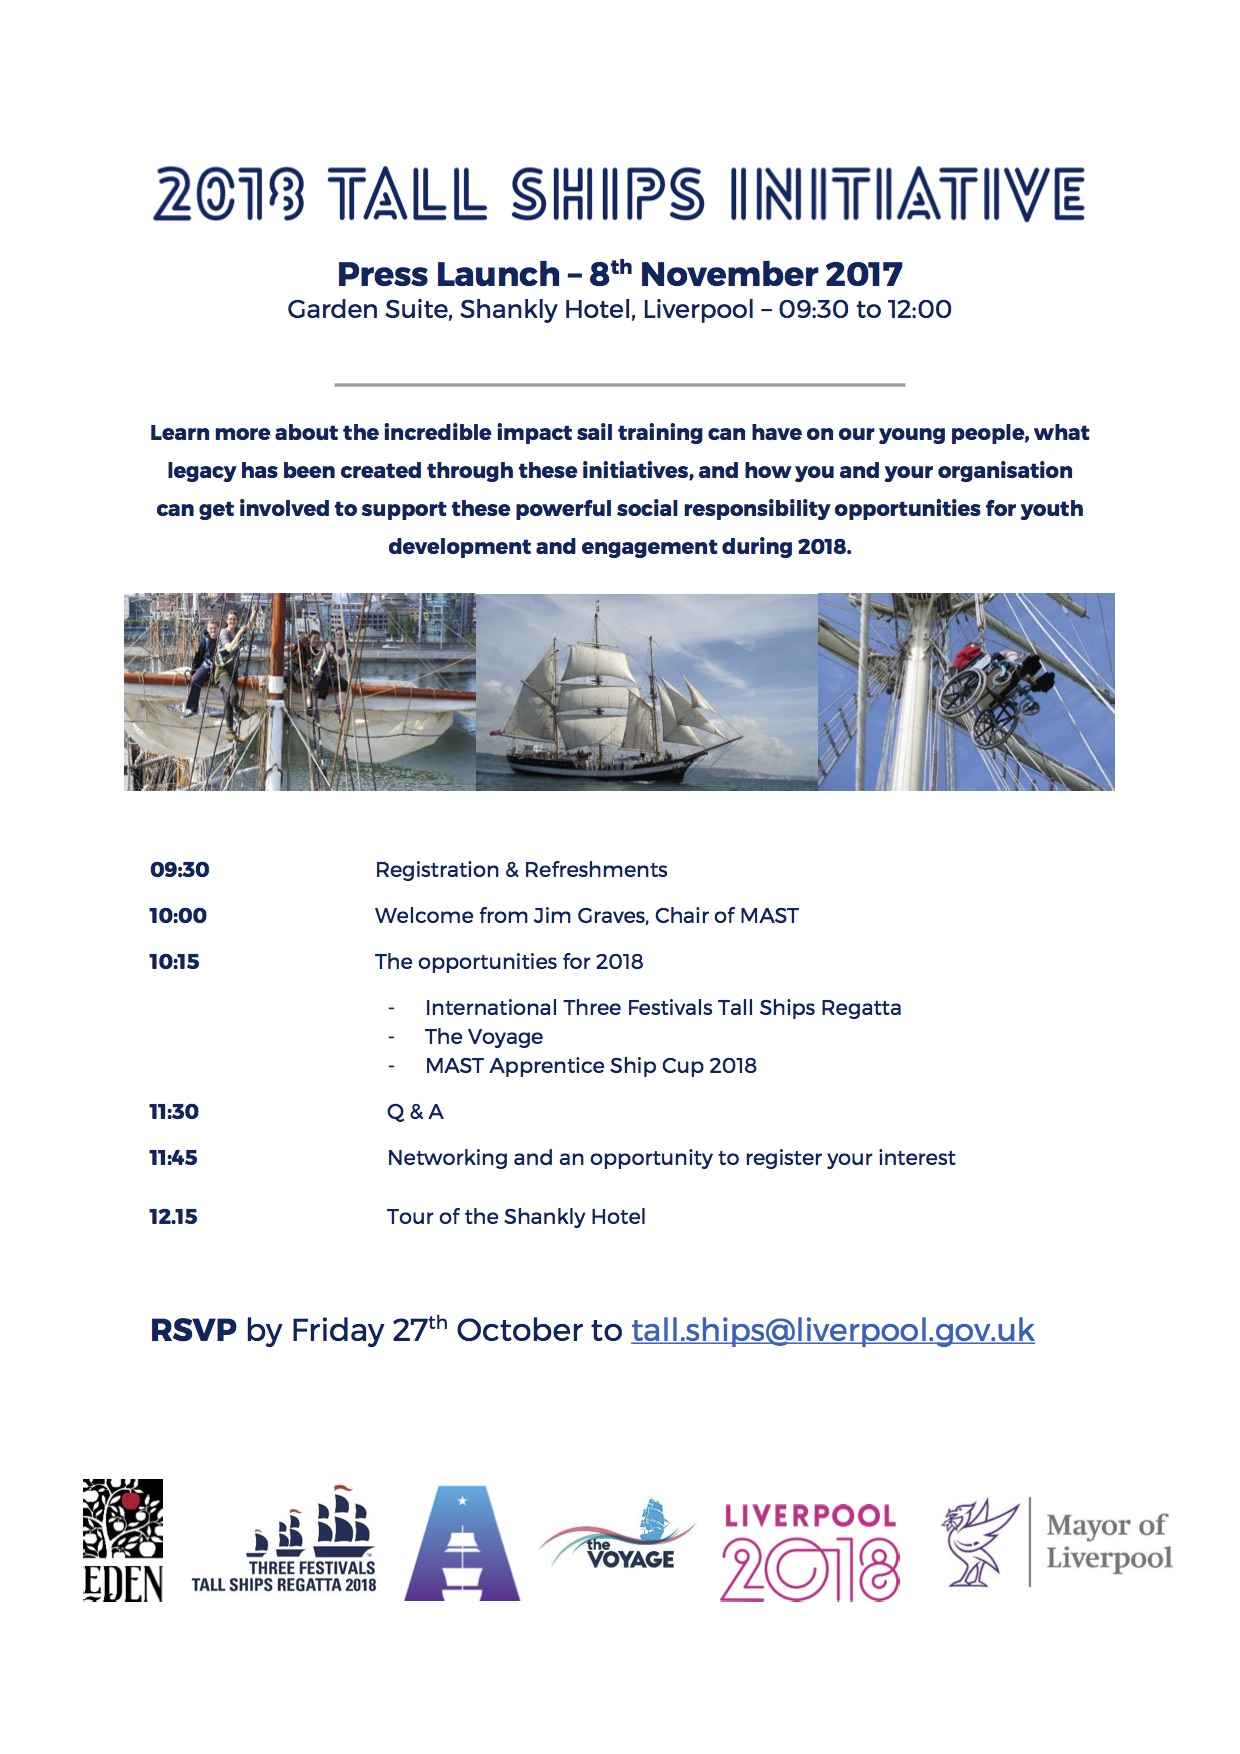 INVITE - 2018 Tall Ships Initiative Press Launch